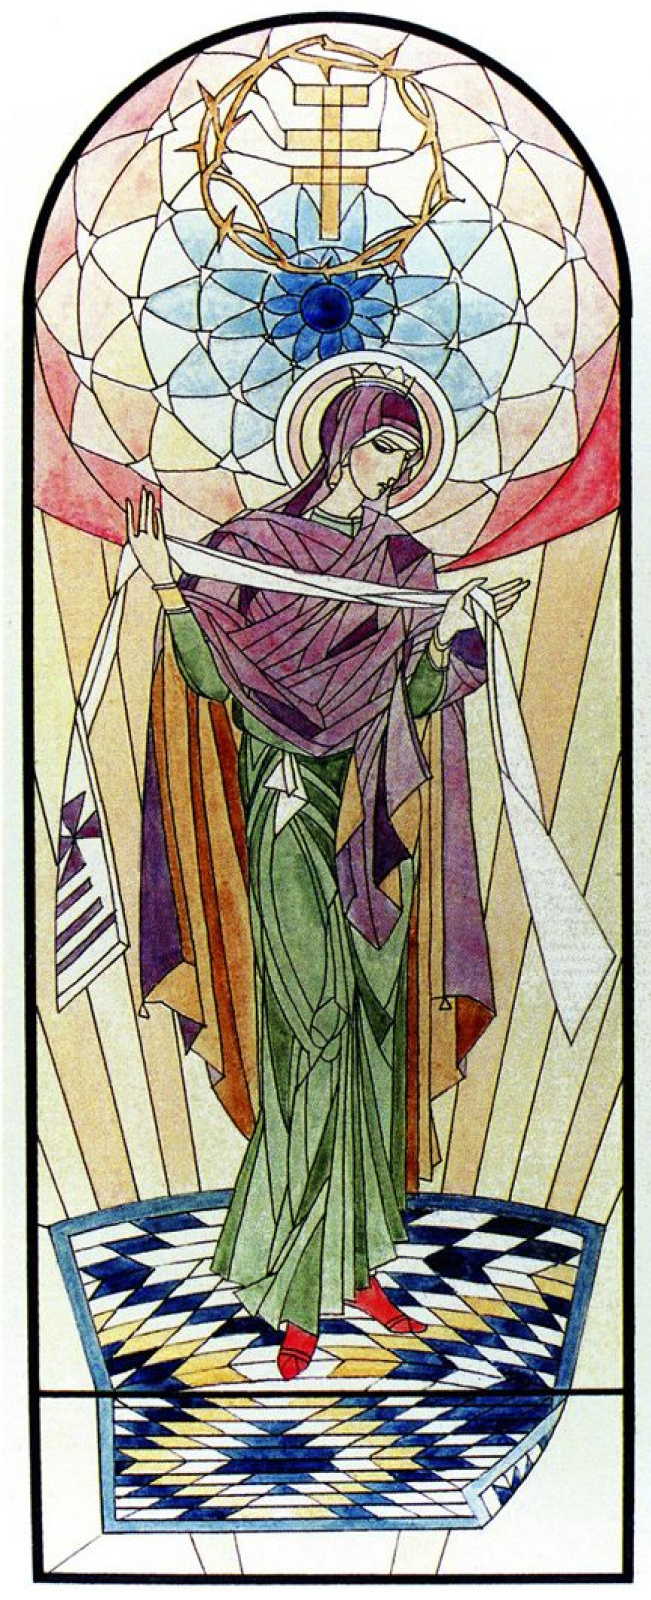 Peter Ivanovich Cold. Virgin Mary. Sketch of stained glass window